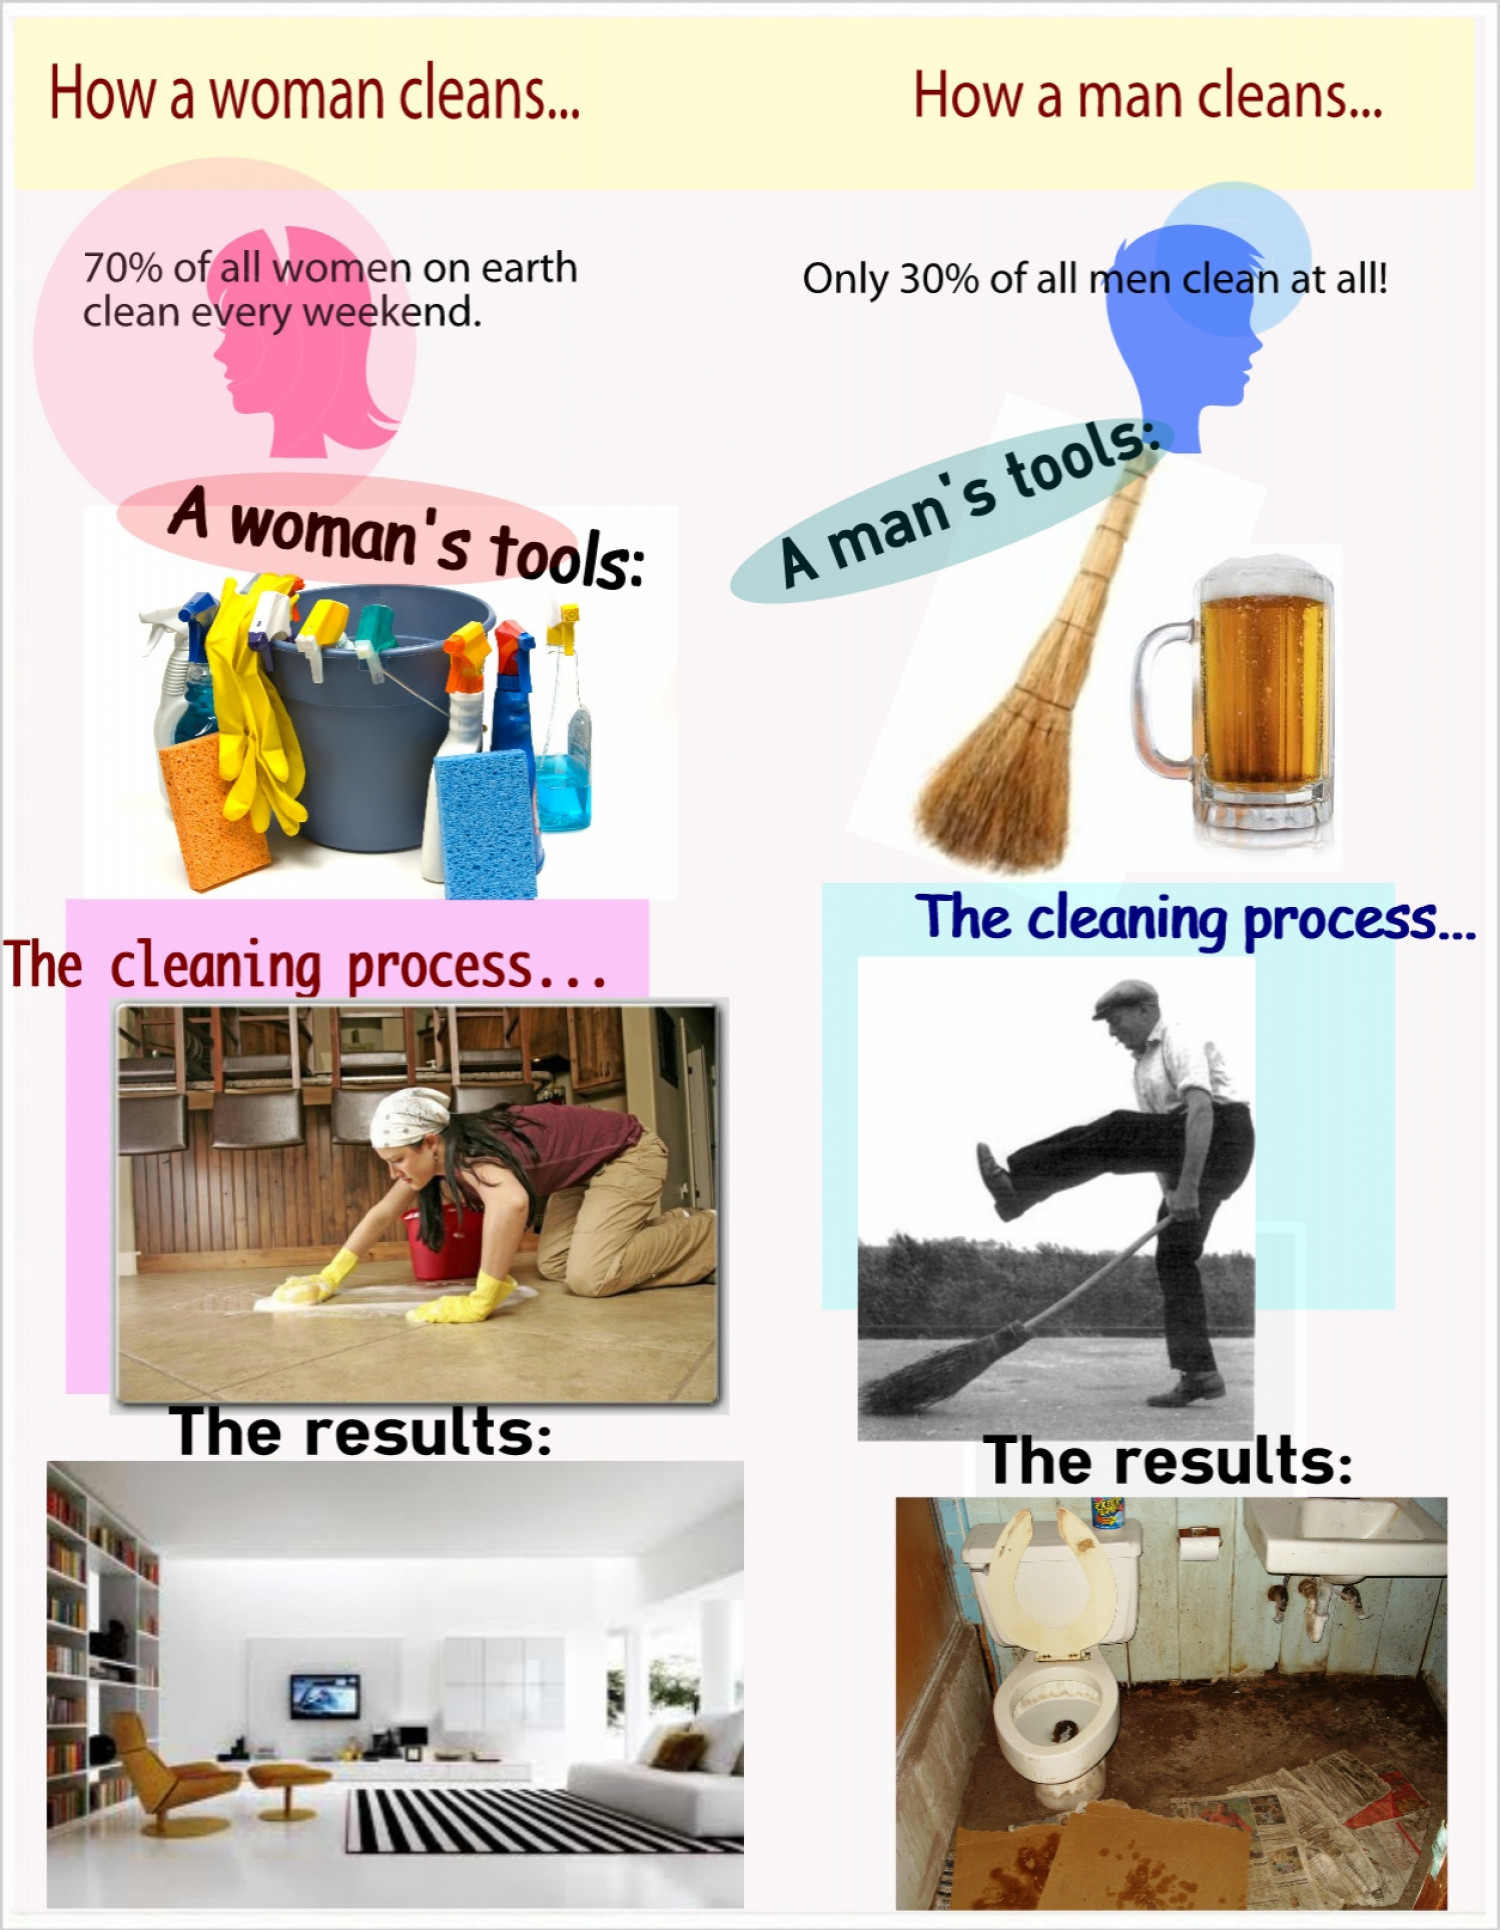 How men and women clean... Infographic